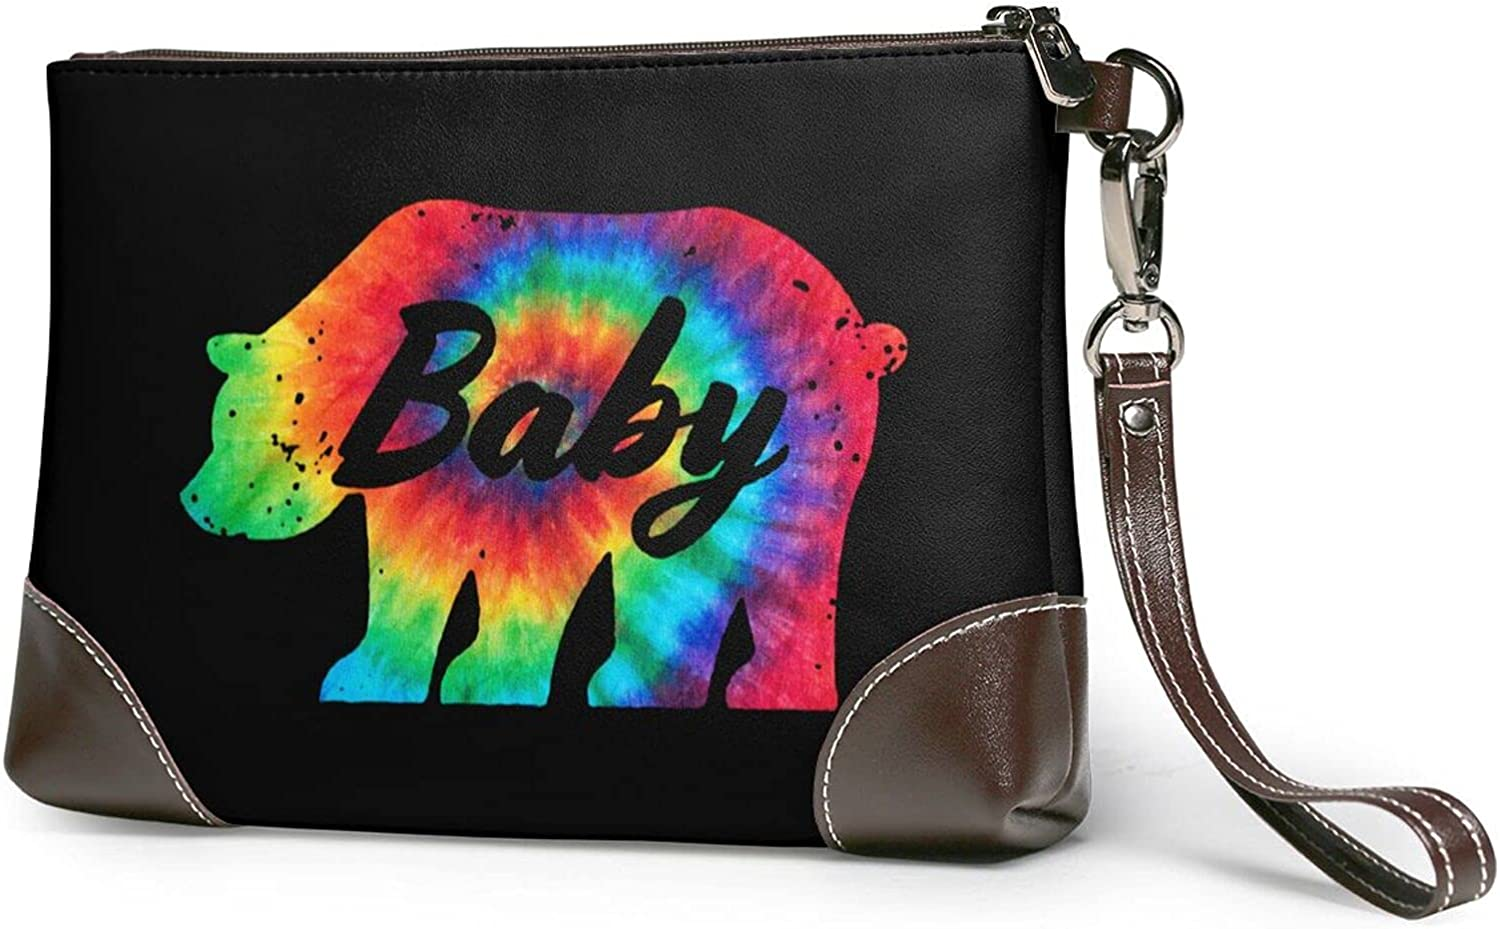 Max 76% OFF Cute Baby Sloth Ladies Leather-Handbag Real Outlet SALE Design Wrist Cowhide